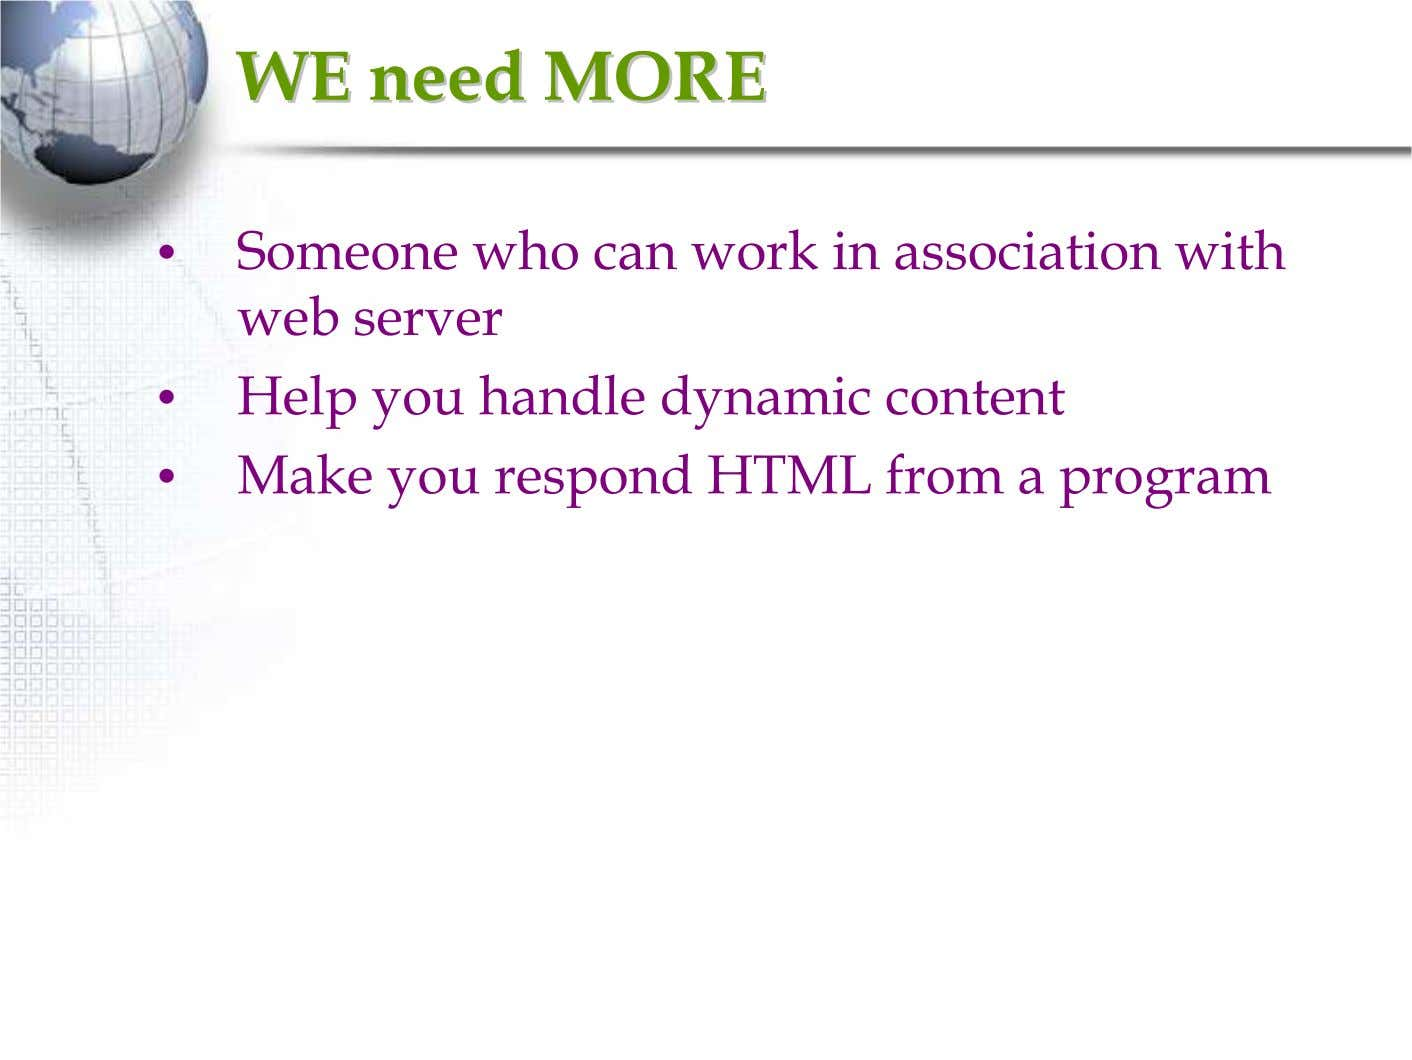 WEWE needneed MOREMORE • Someone who can work in association with web server • Help